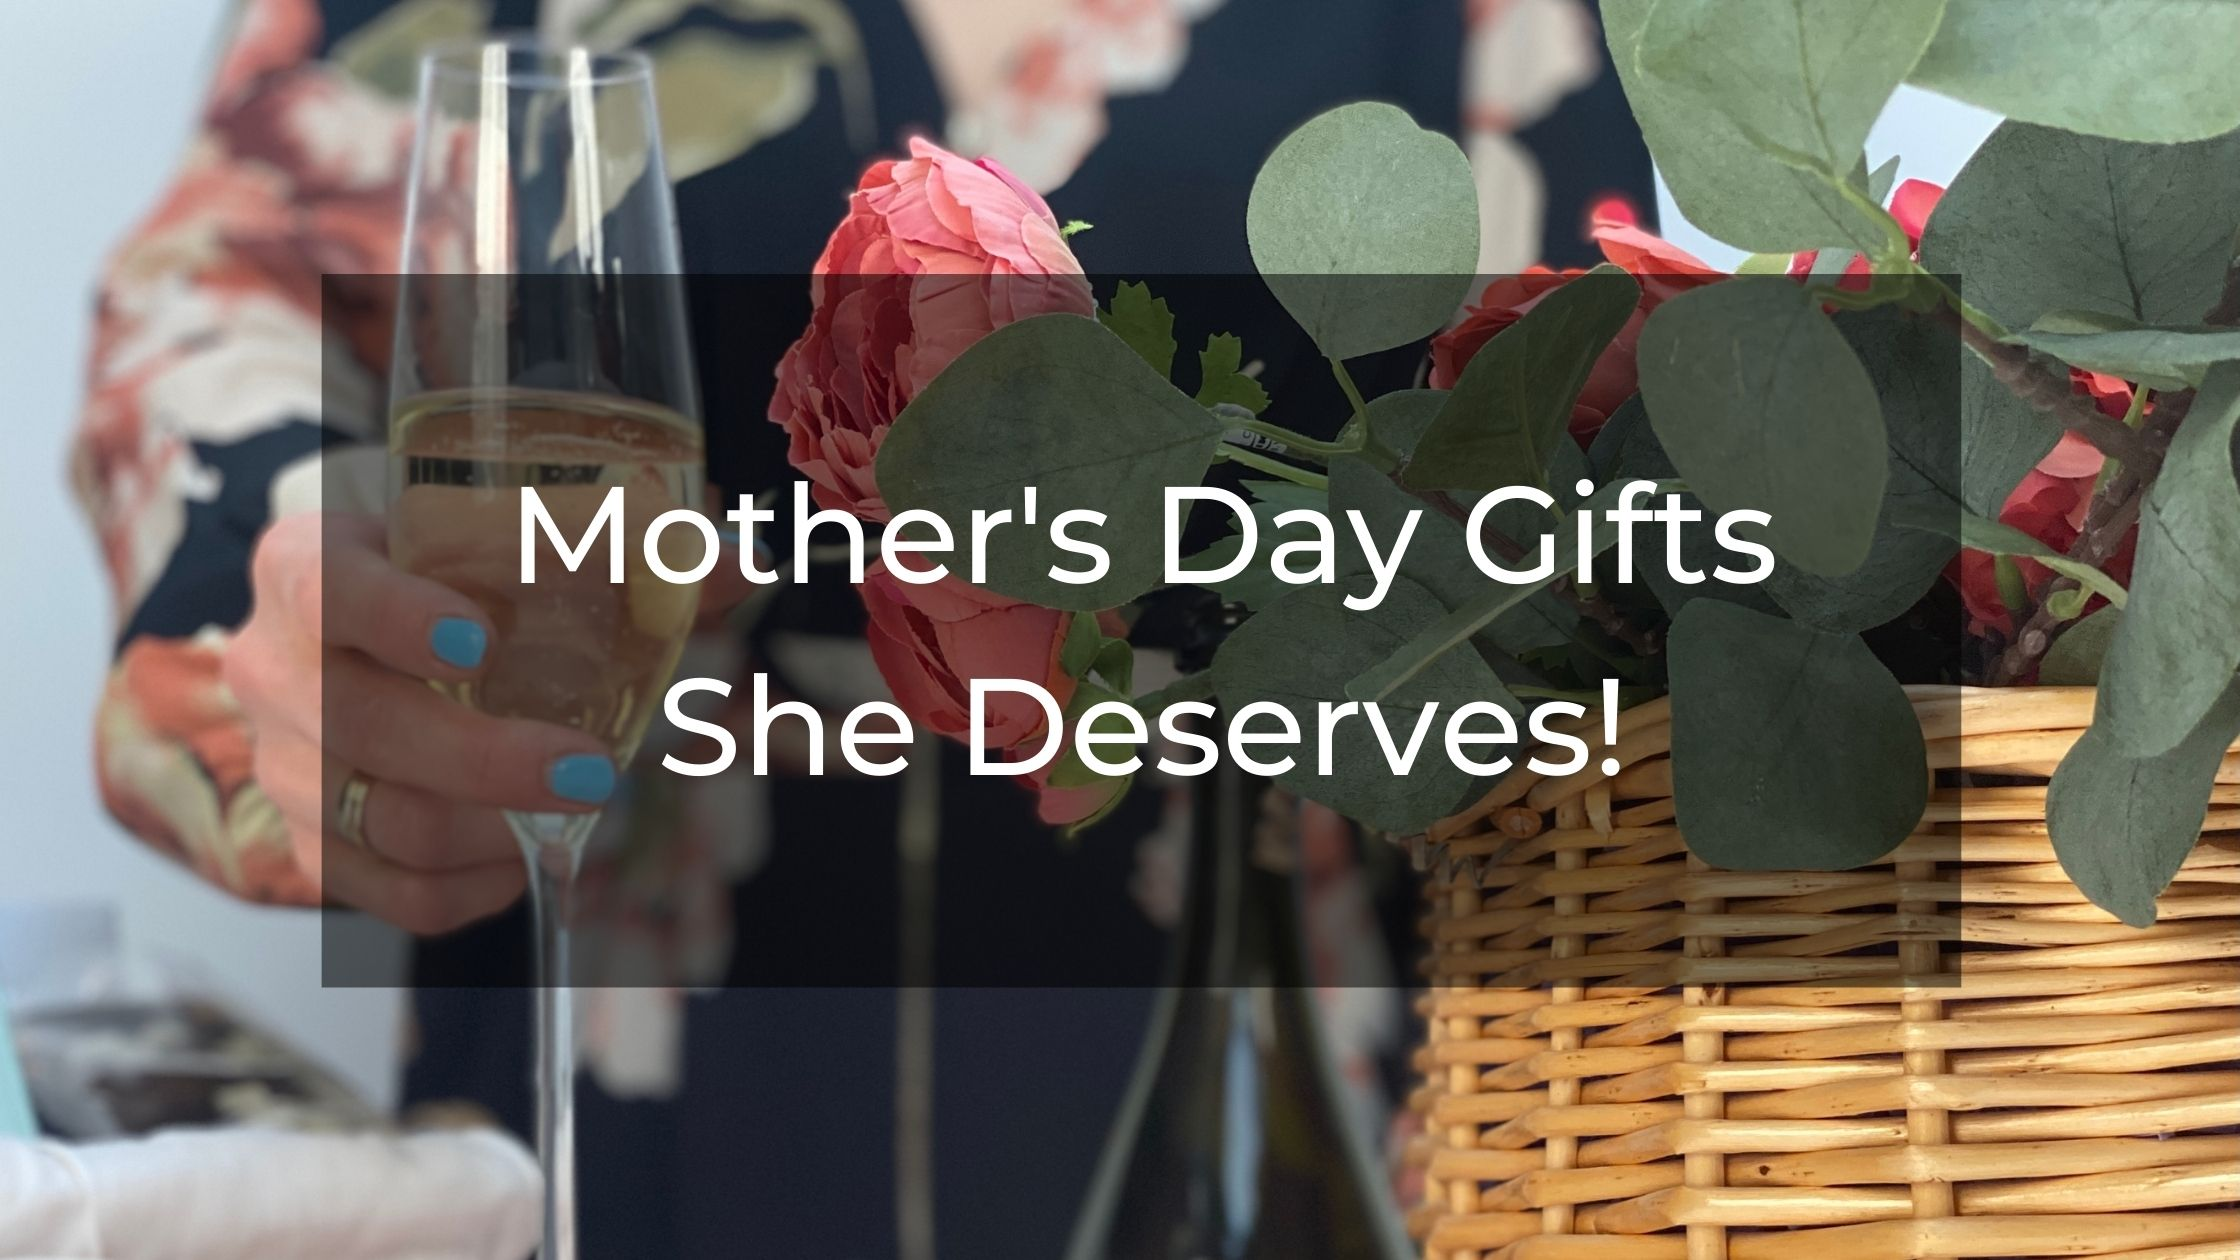 Mother's Day Gifts She Deserves